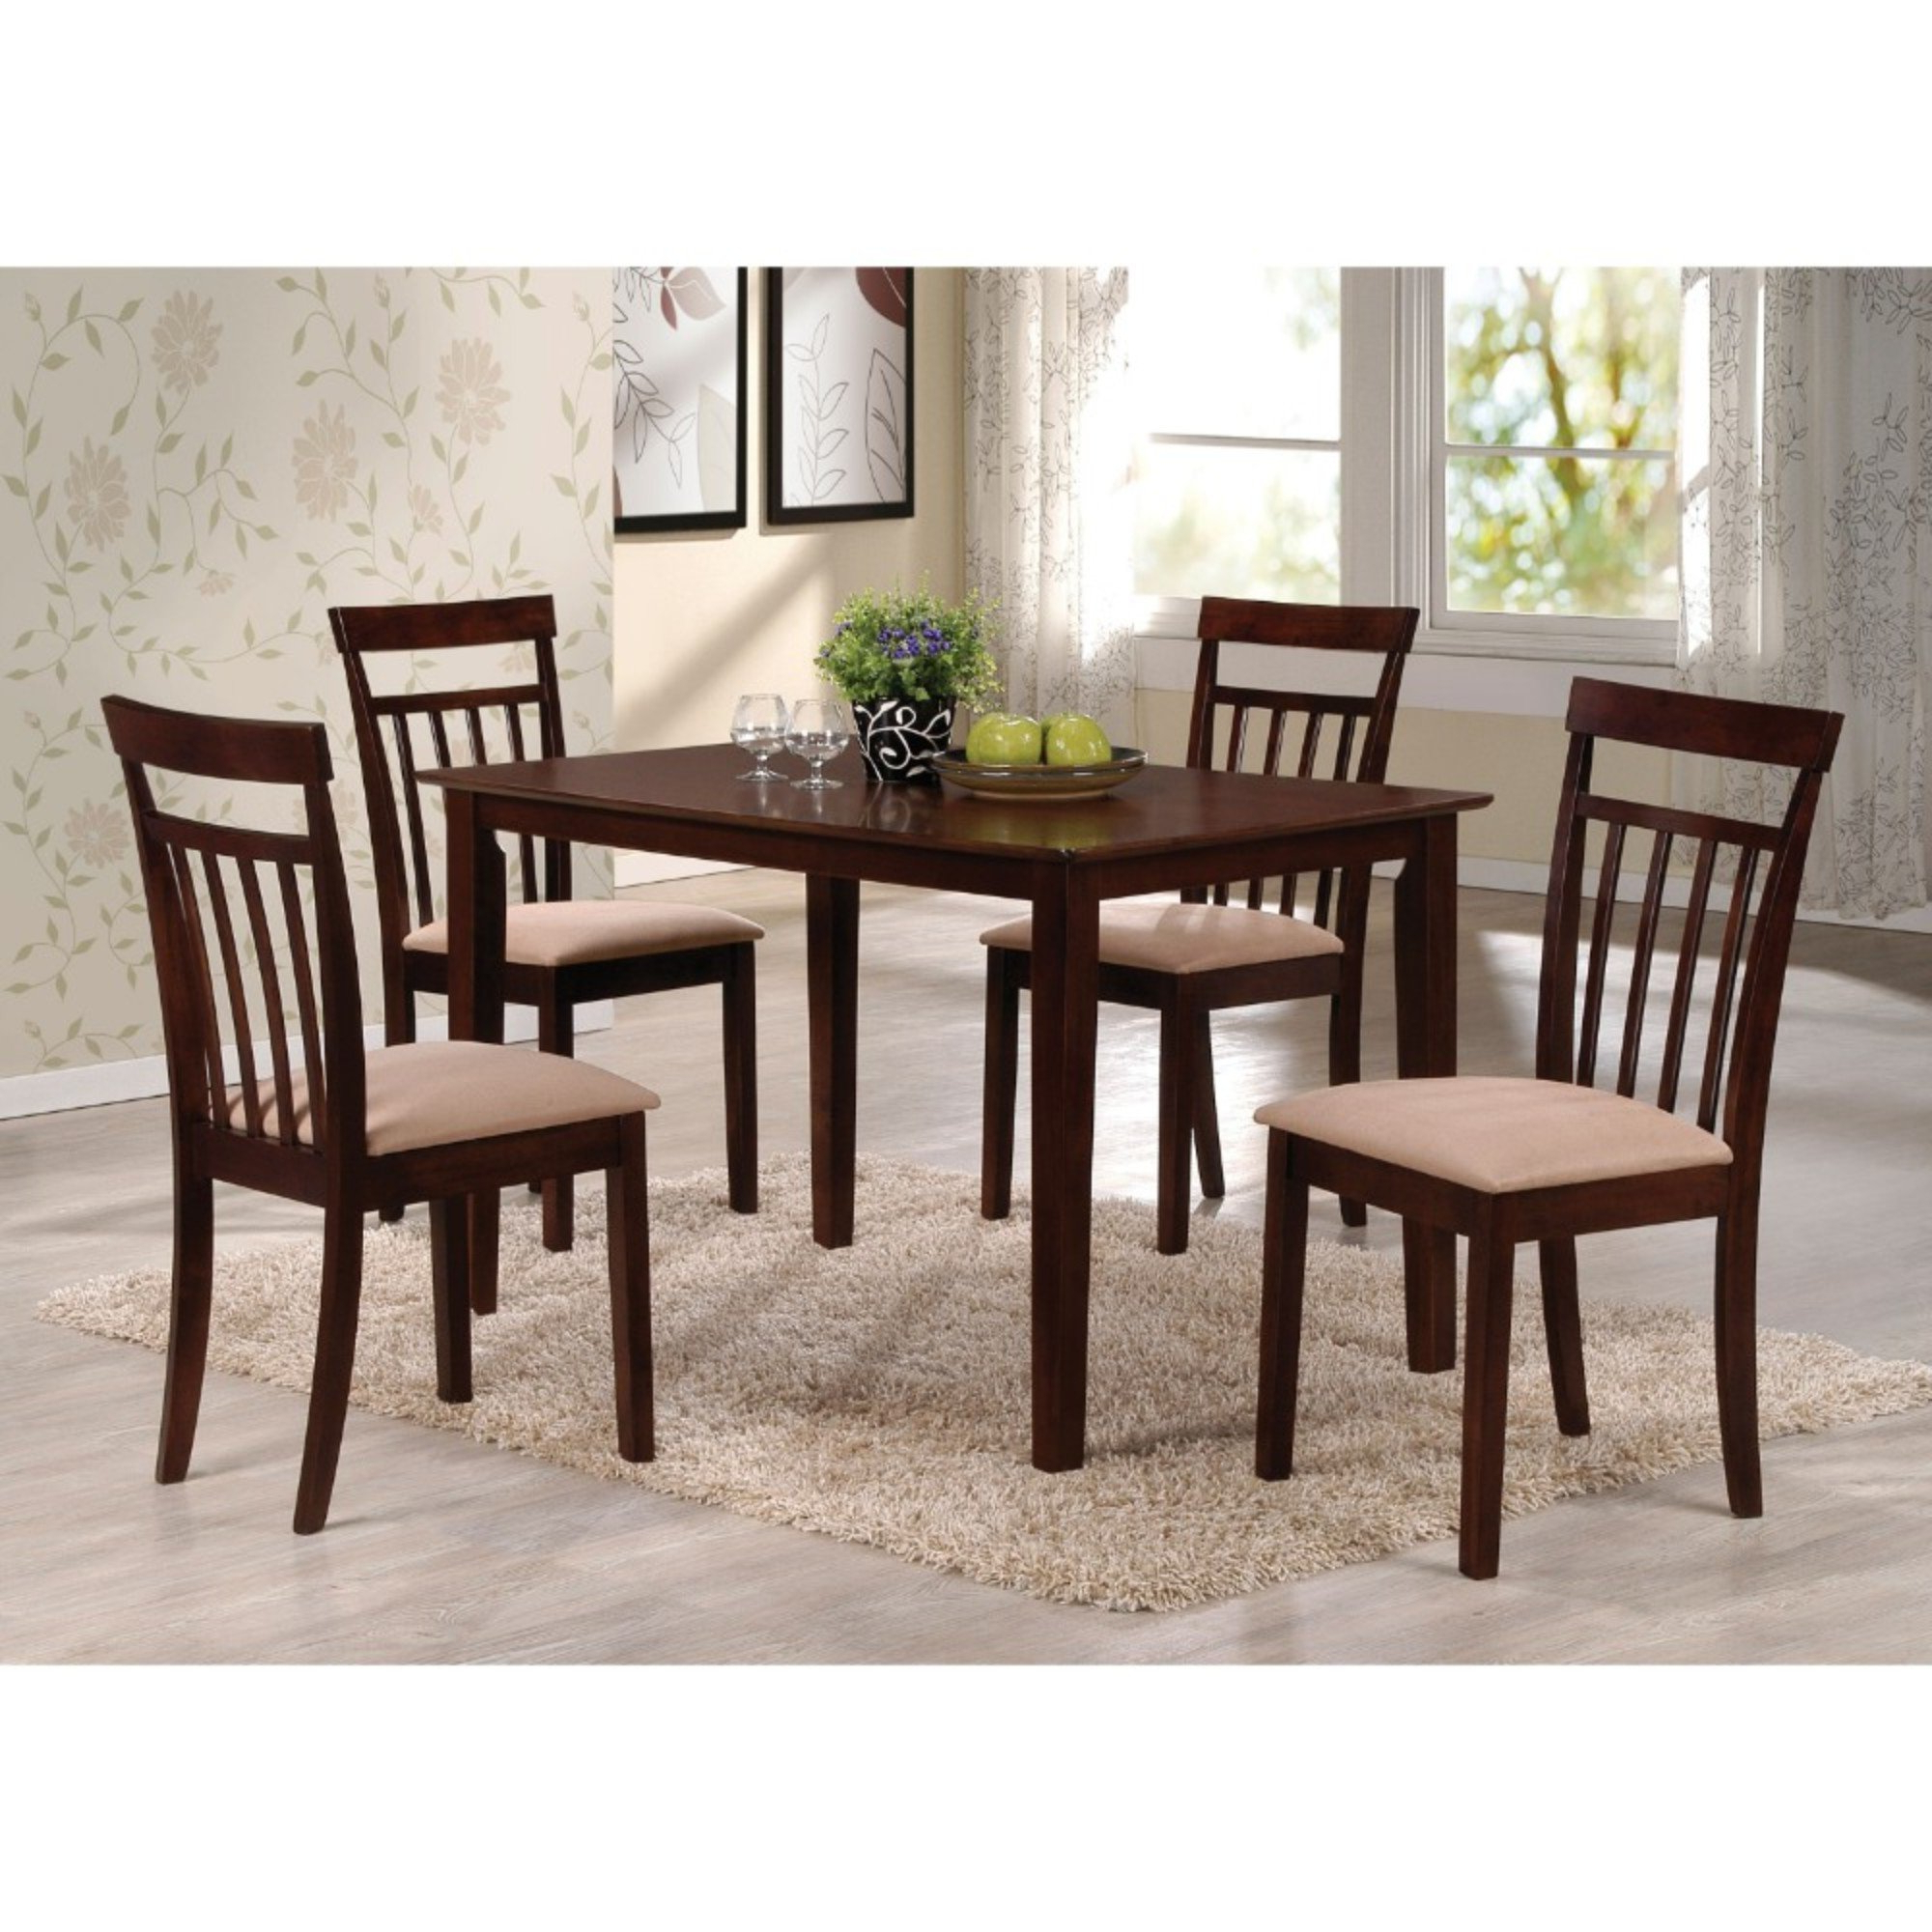 Favorite Bartel Wooden Slatted Back Chairs 5 Piece Dining Set Pertaining To Adan 5 Piece Solid Wood Dining Sets (set Of 5) (Gallery 16 of 20)